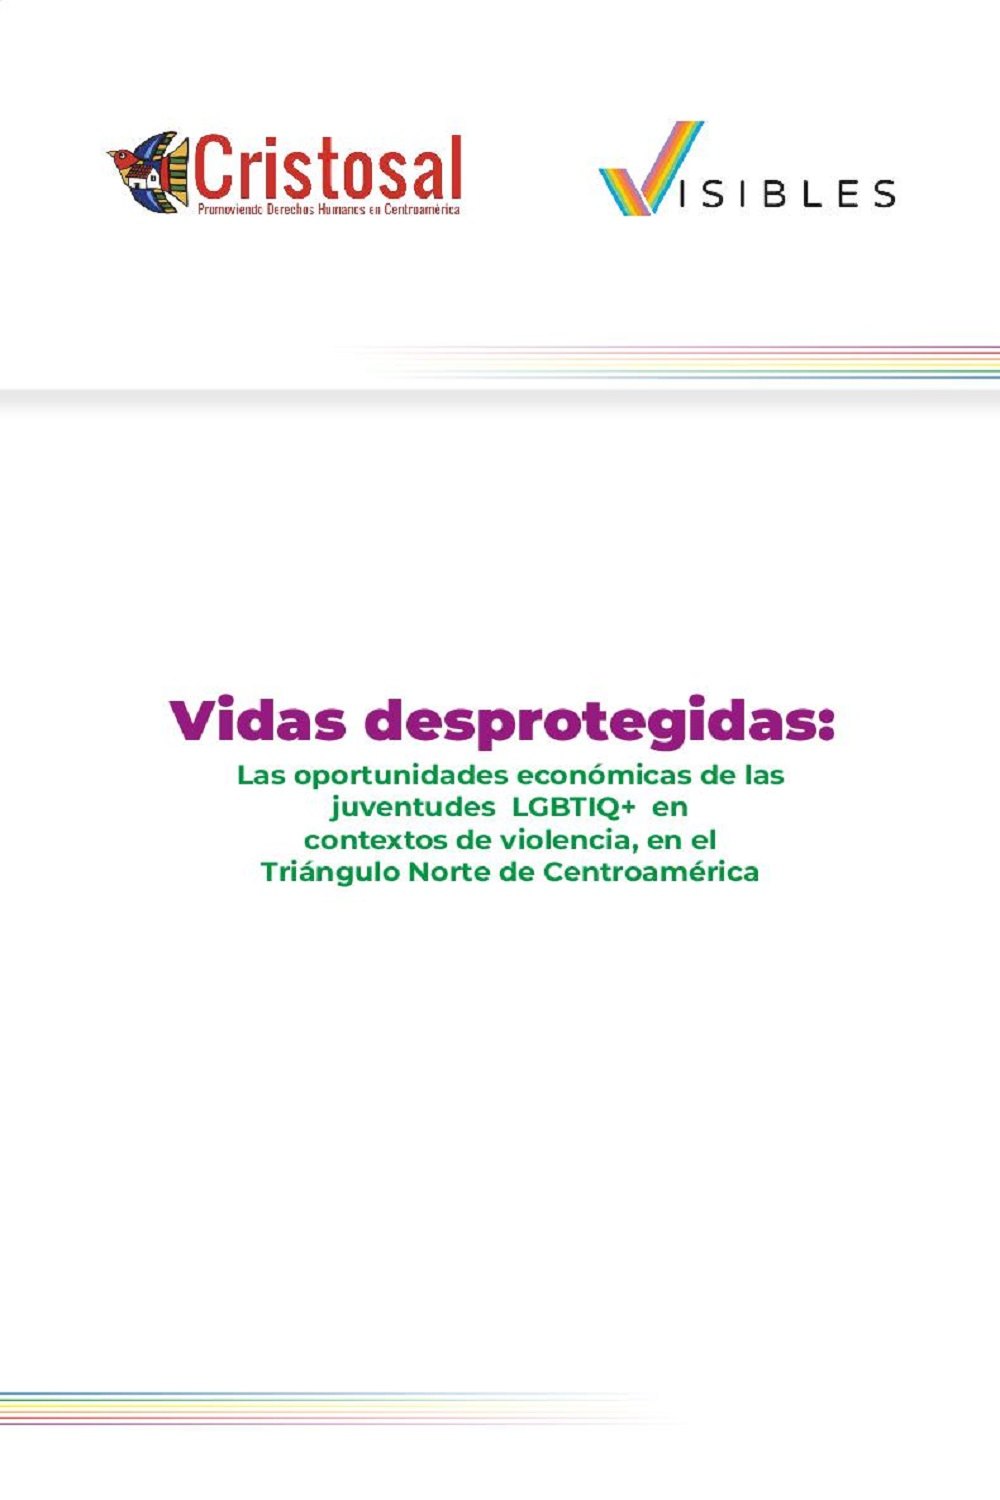 Unprotected Lives: Economic Opportunities for LGBTIQ + Youth in Contexts of Violence, in the Northern Triangle of Central America (Spanish)